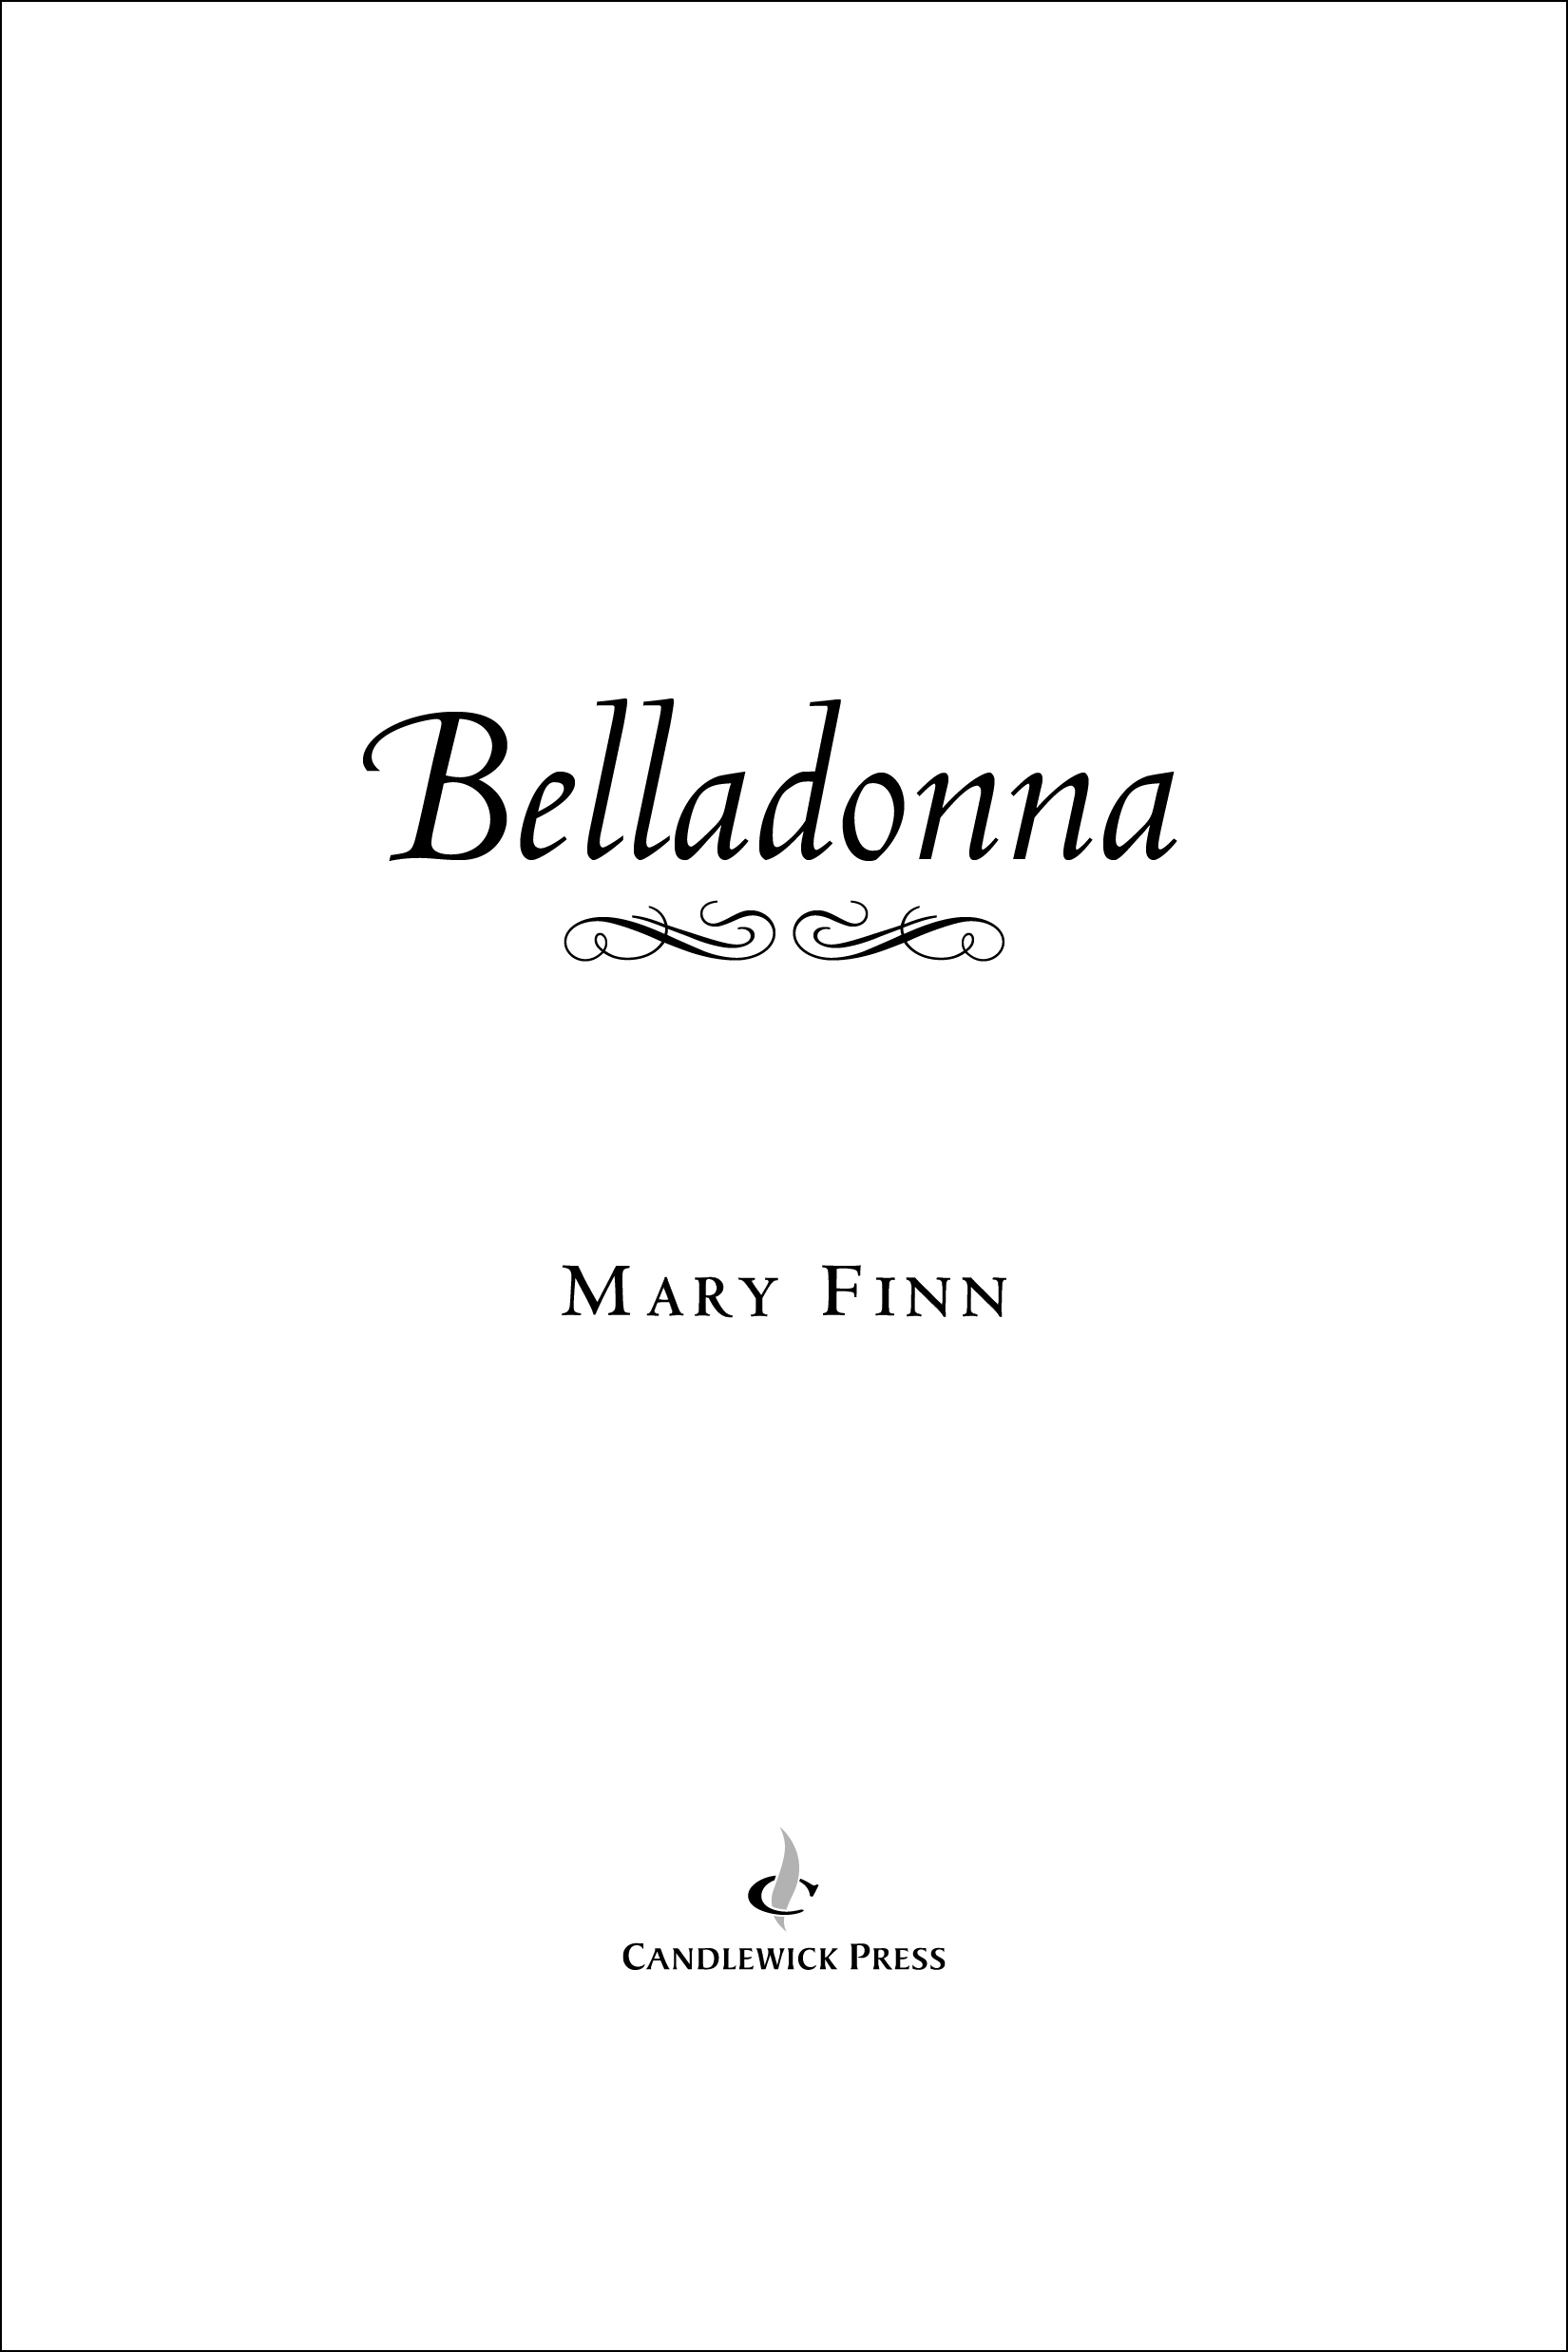 Title page for BELLADONNA